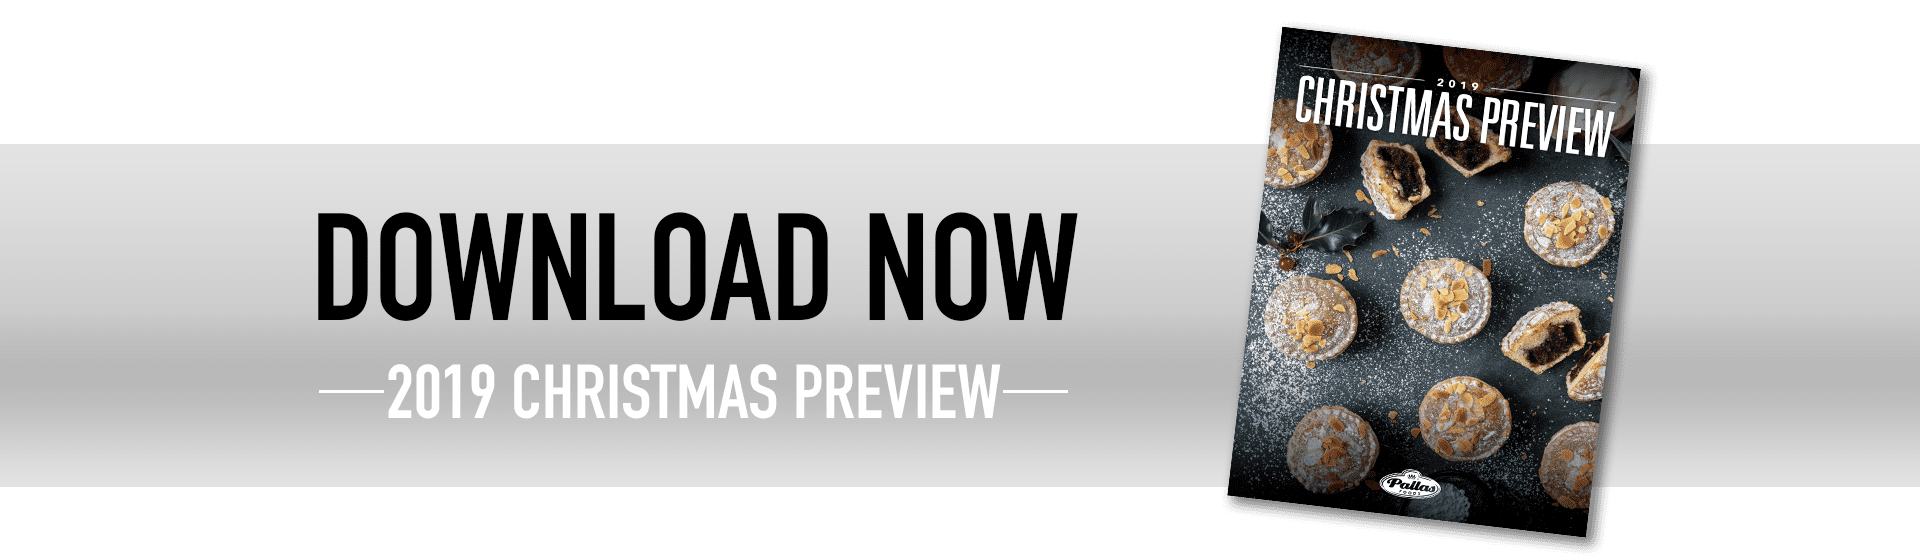 Christmas Preview 2019